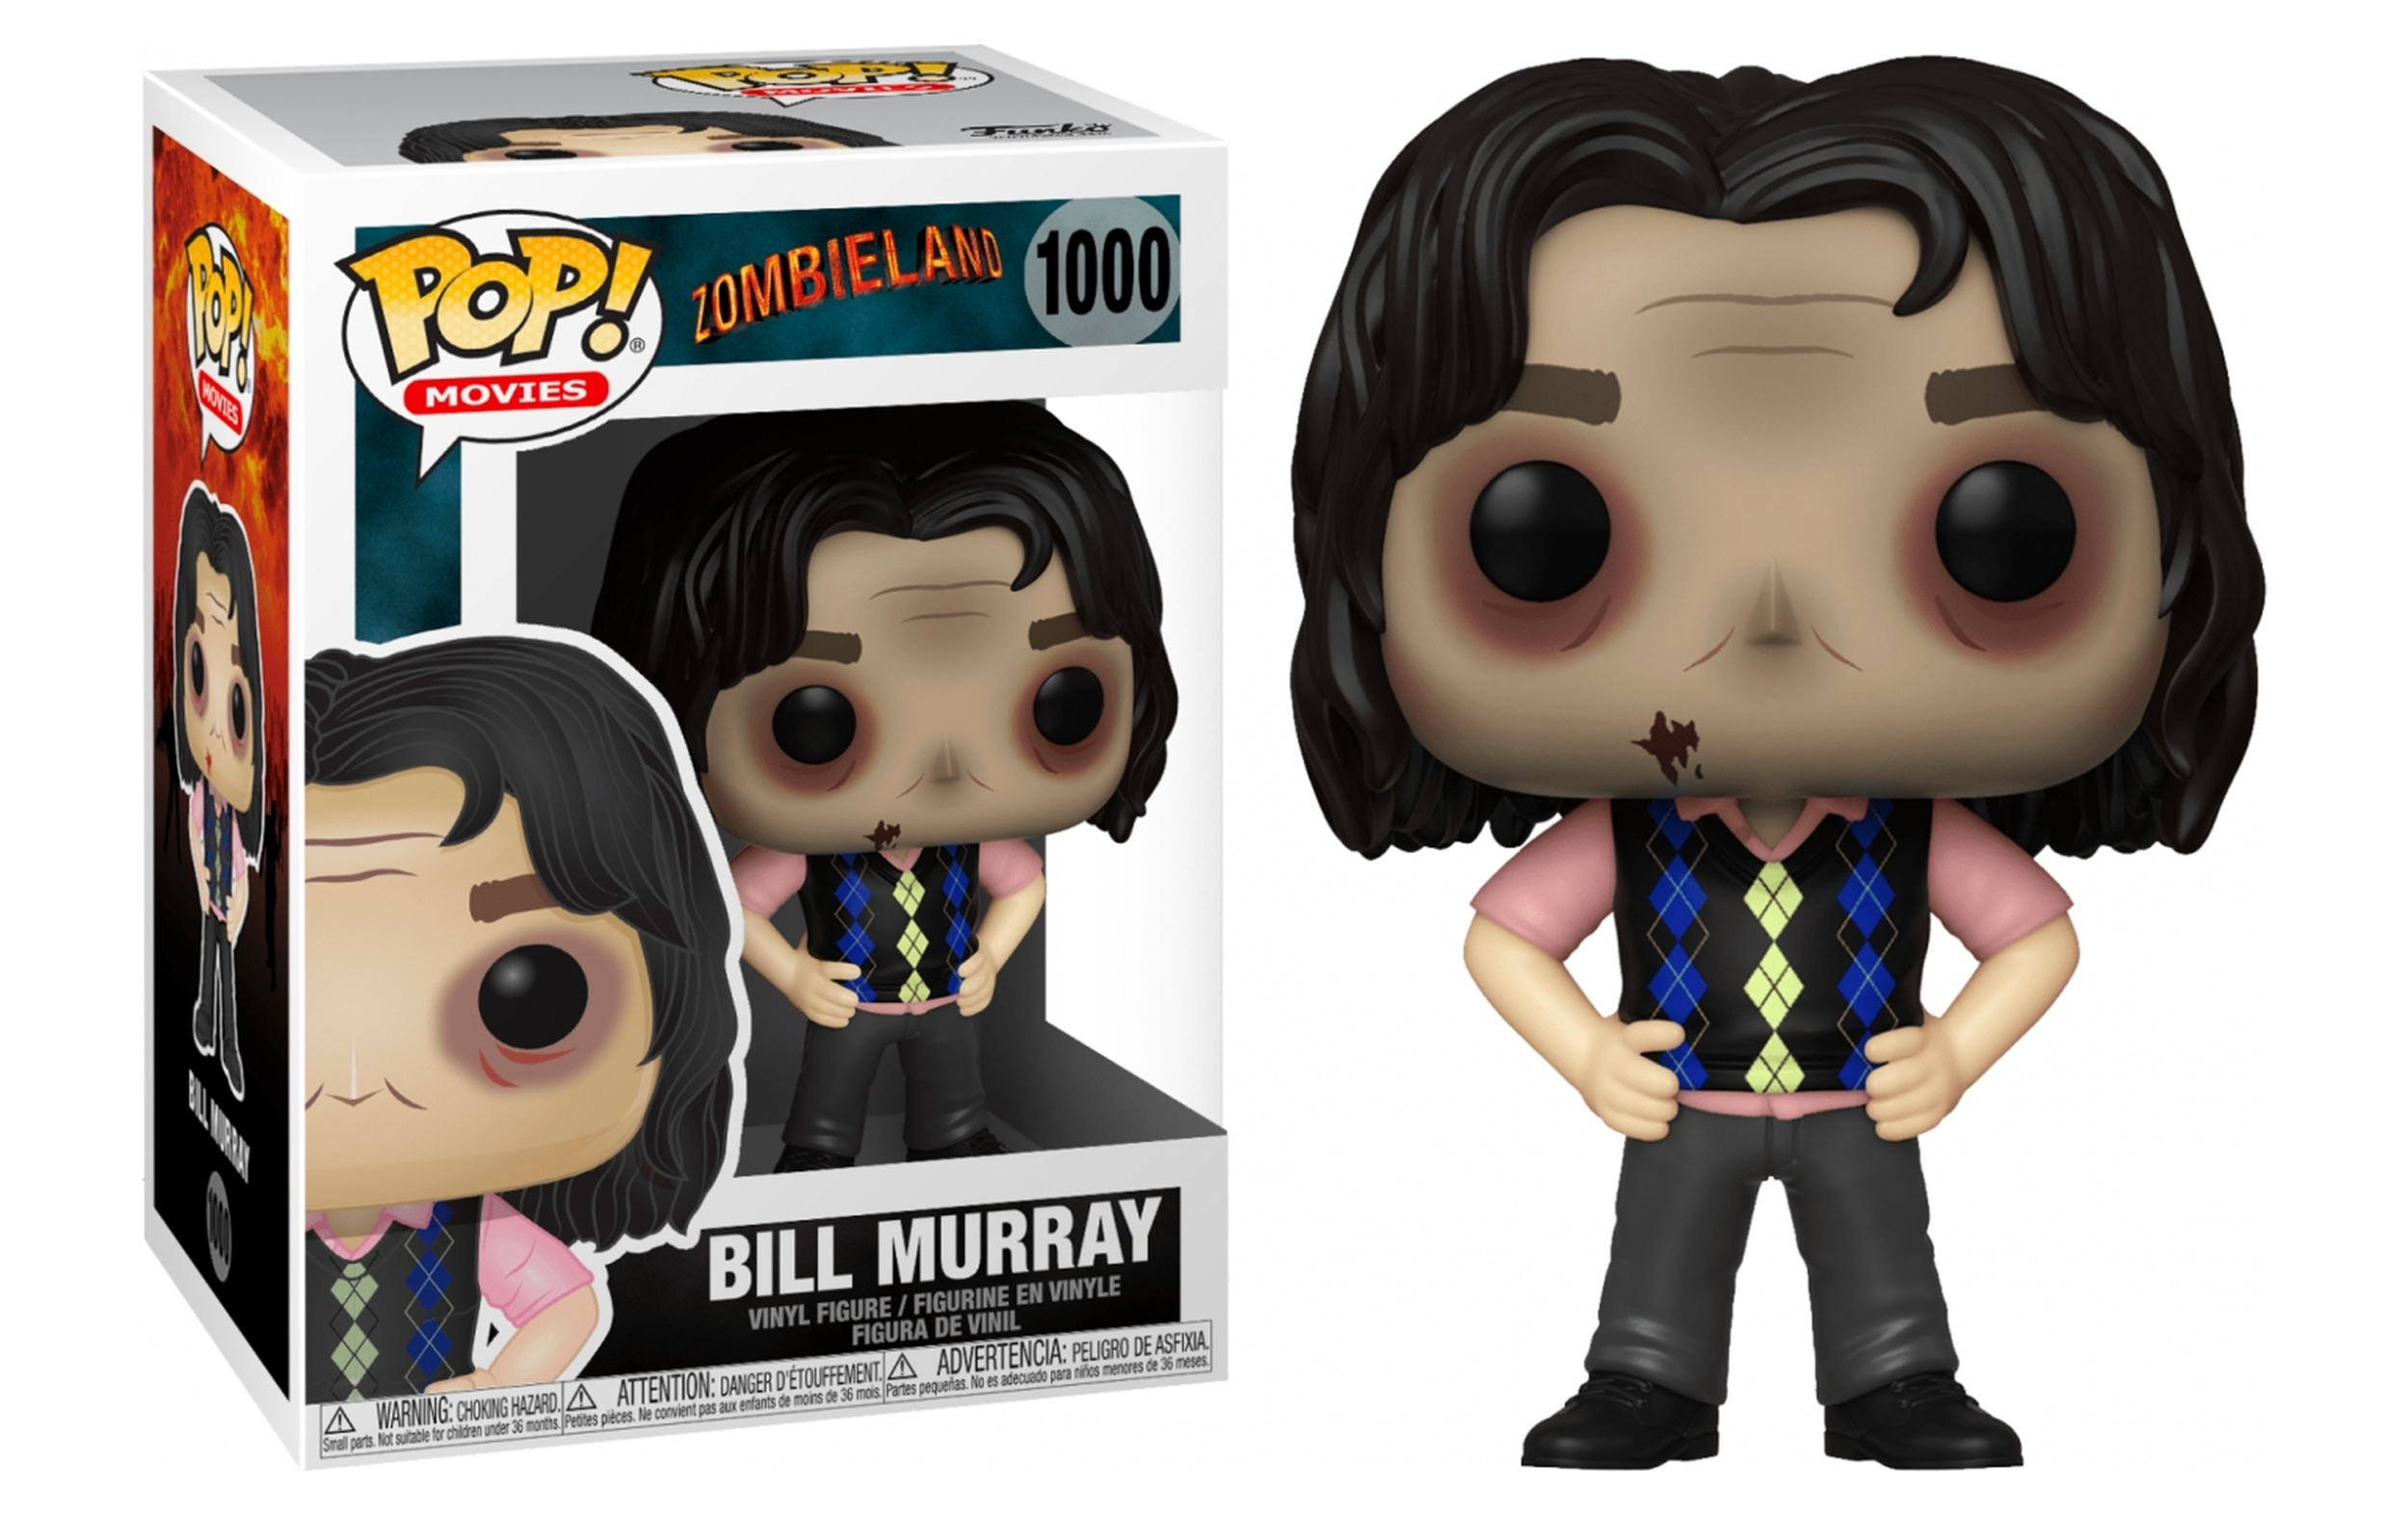 Zombieland Bill Murray 1000 Funko POP Vinyl Figure